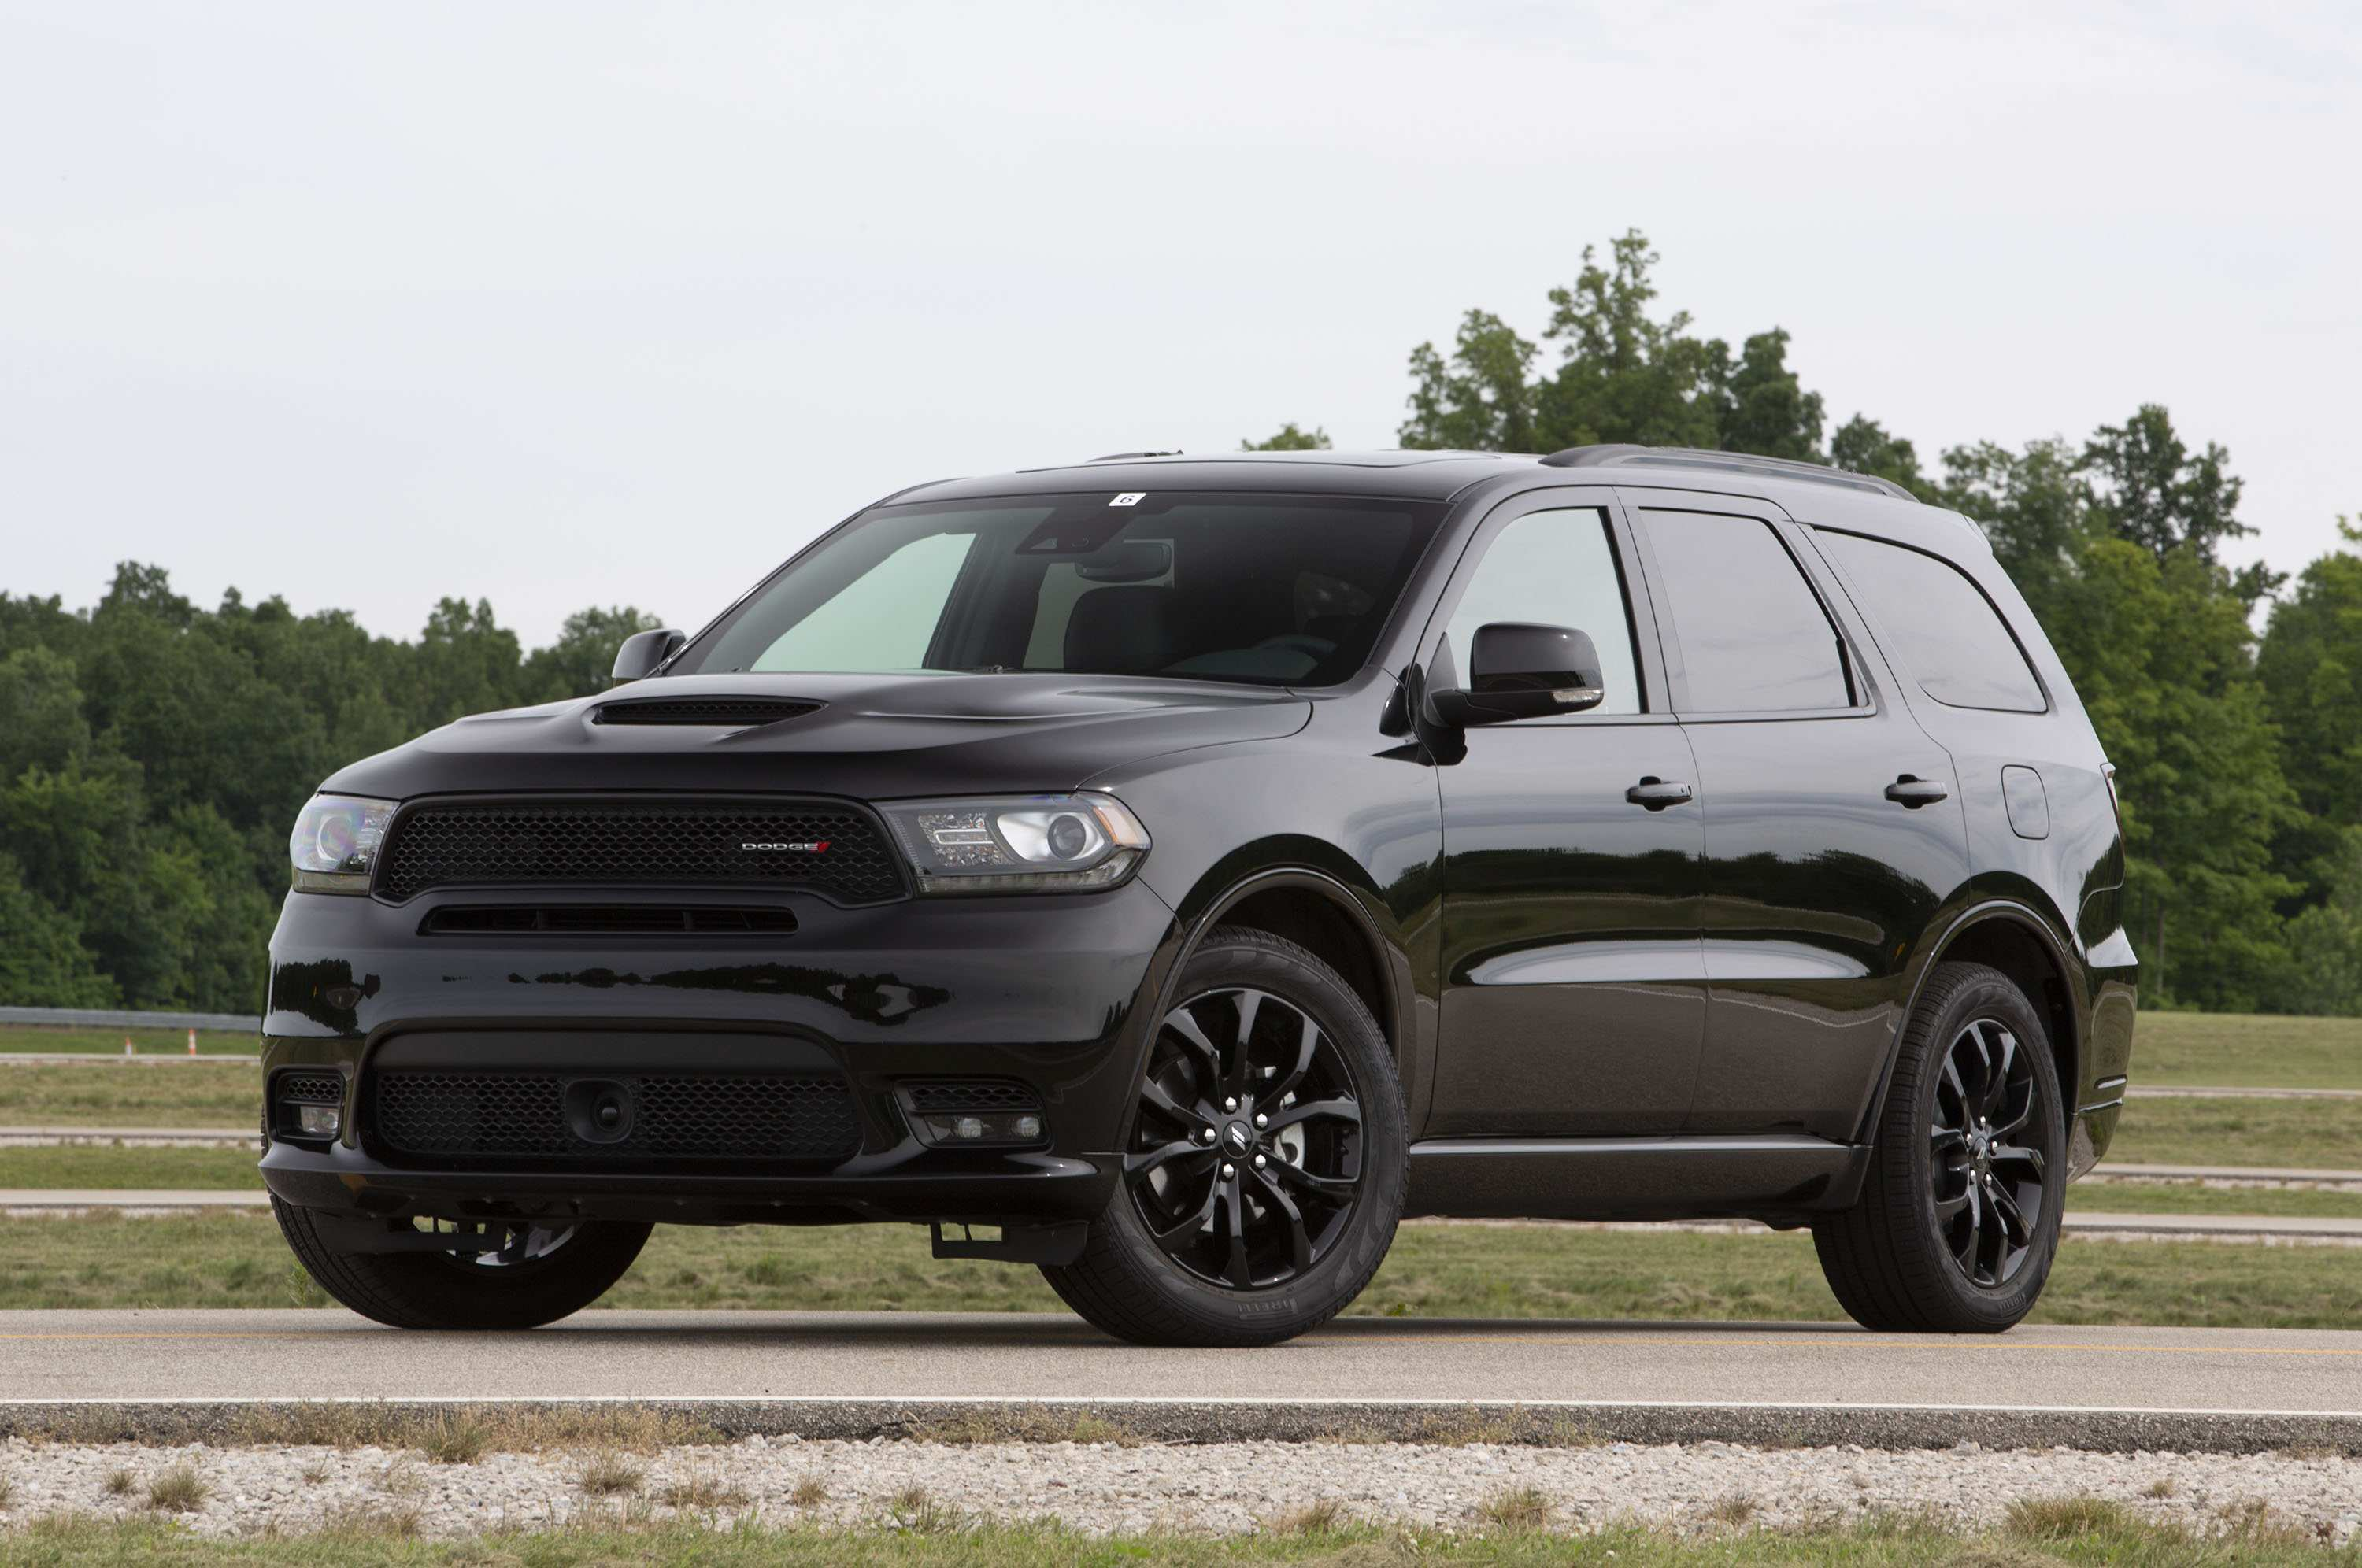 45 New 2019 Dodge Durango Srt Release Date Research New